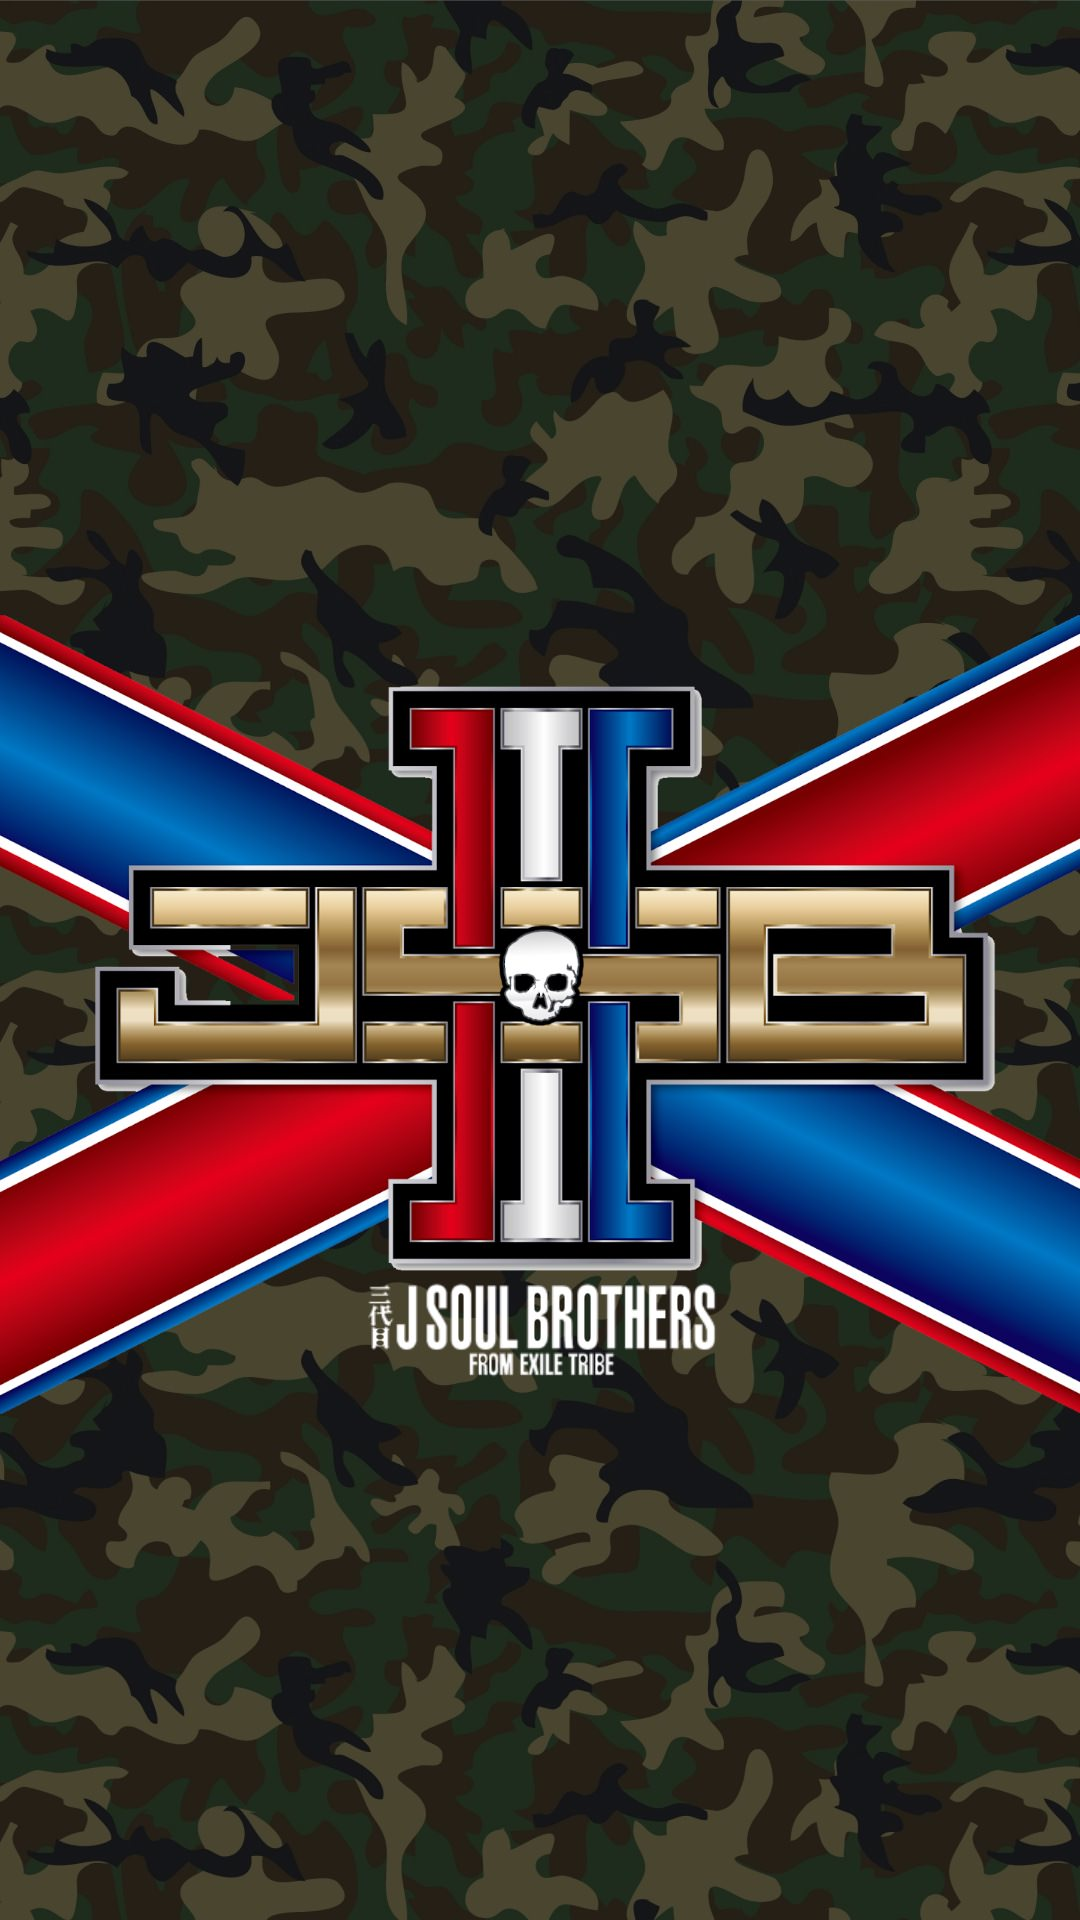 3jsb i37 - 三代目 J SOUL BROTHERSの高画質スマホ壁紙40枚 [iPhone&Androidに対応]